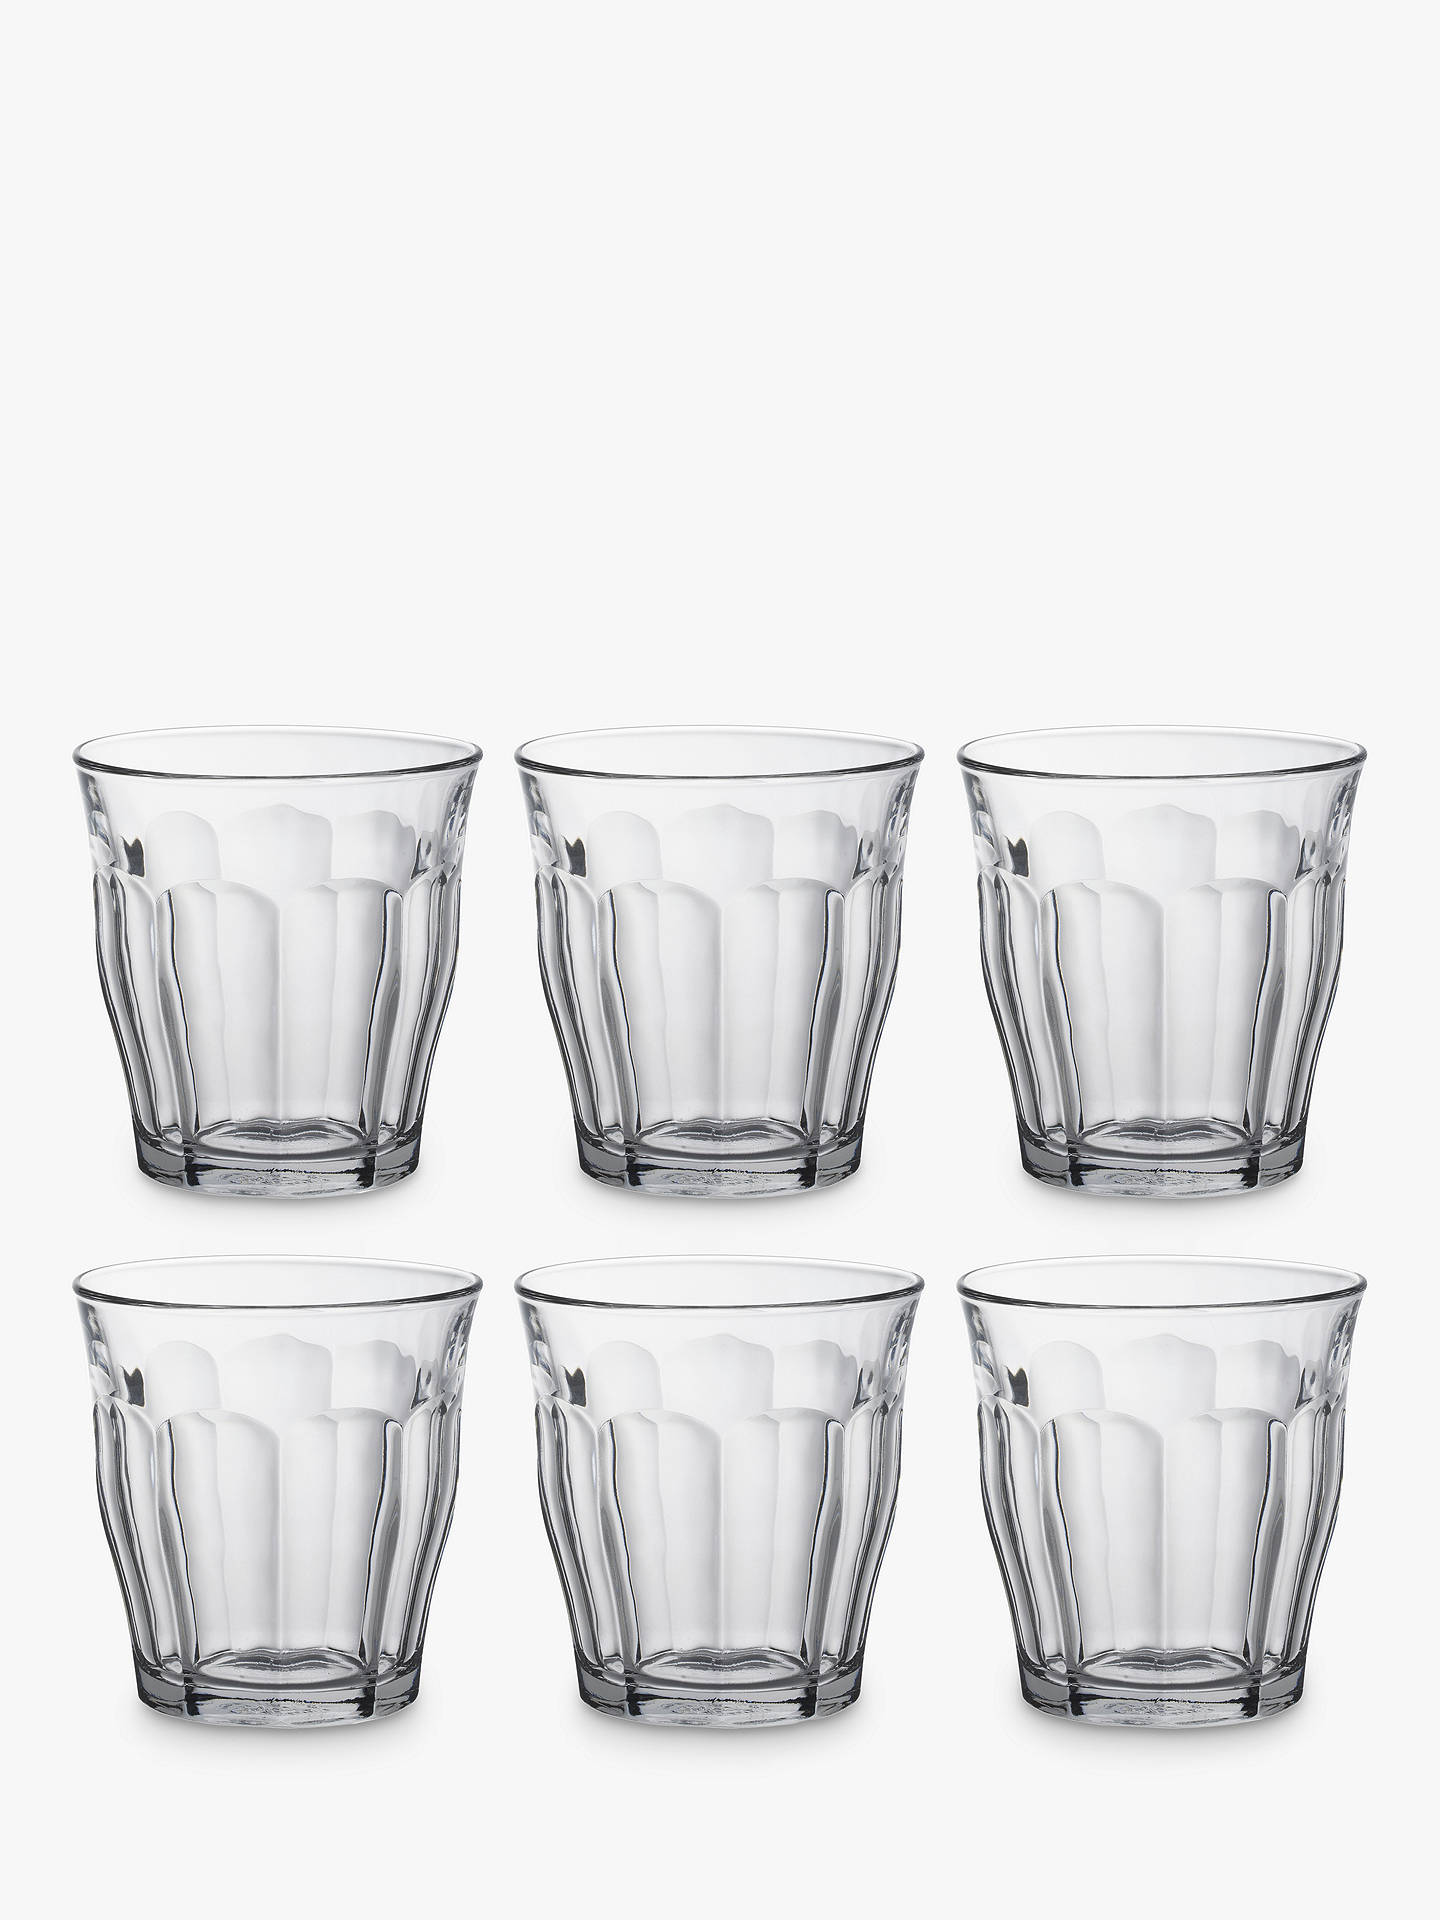 BuyDuralex Picardie Tumbler, Set of 6, Clear, 310ml Online at johnlewis.com